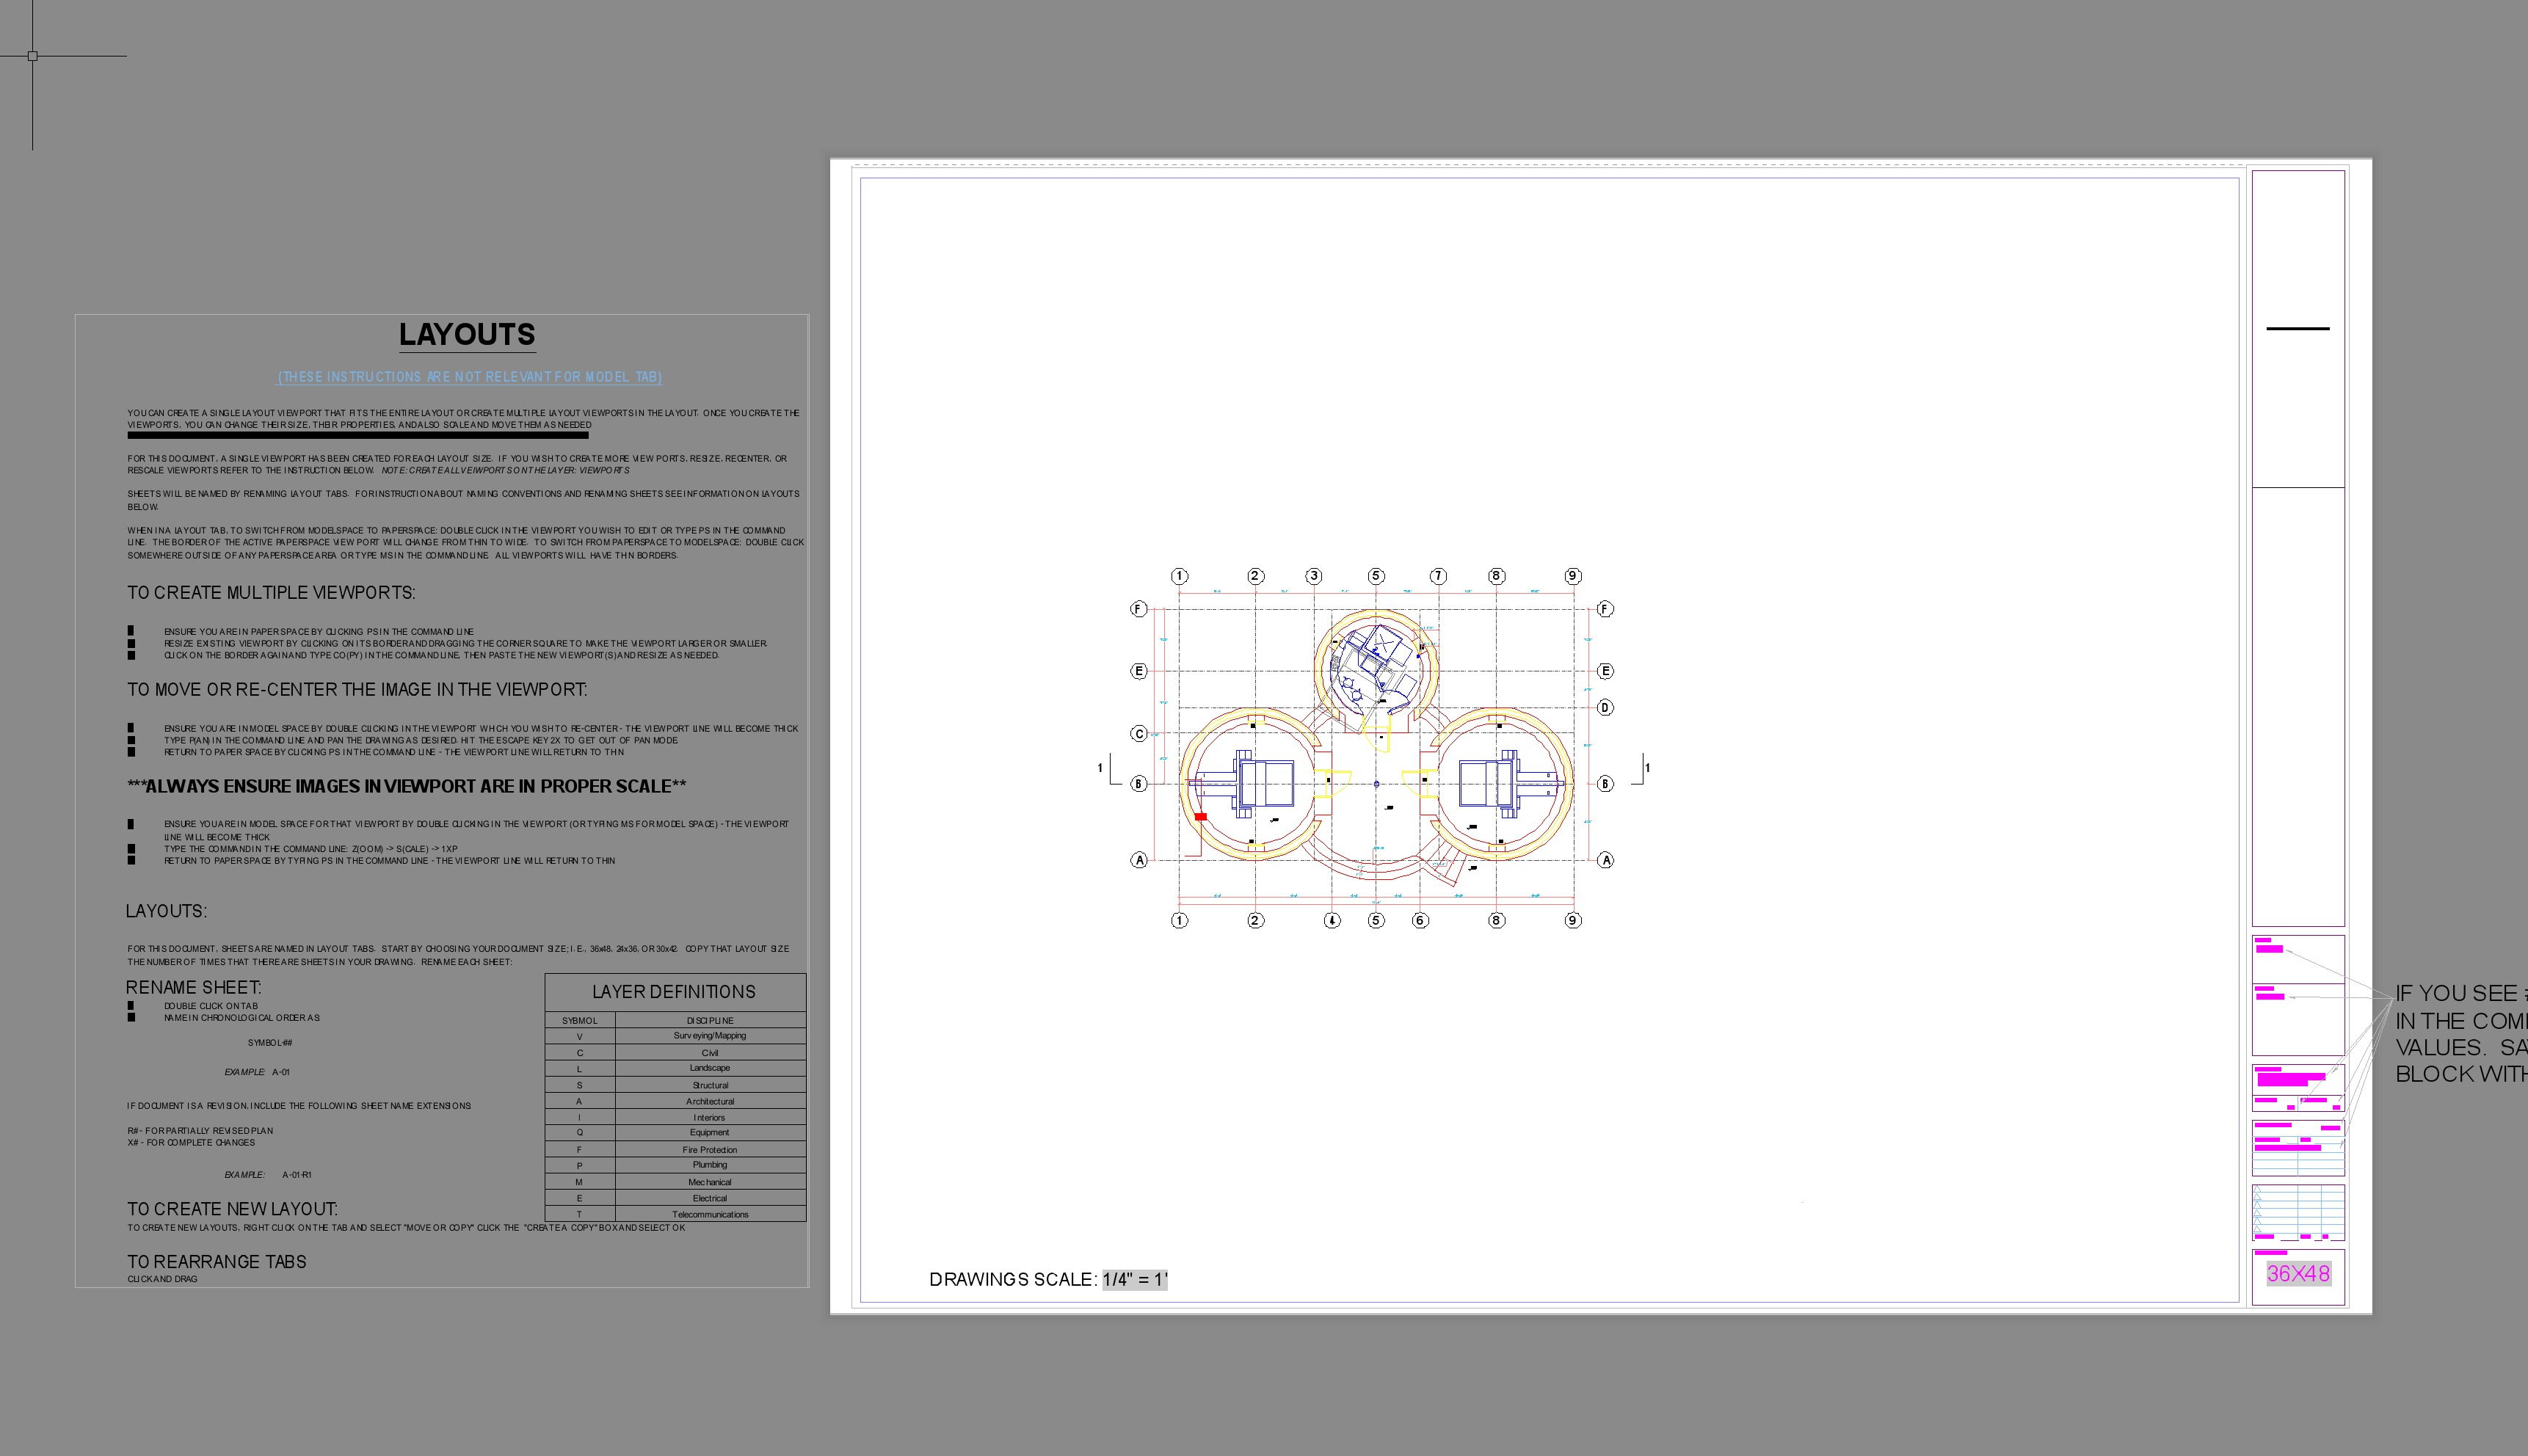 AutoCAD Line Weight and Layer Template and Tutorial, Open Source AutoCAD, AutoCAD Tutorial, creating with AutoCAD, AutoCAD Line Weight Standards, AutoCAD Layer Standards, CAD standards, drawing with CAD, designing with CAD, standards for CAD, best line weights for AutoCAD, best colors for AutoCAD design space, working in AutoCAD, One Community AutoCAD